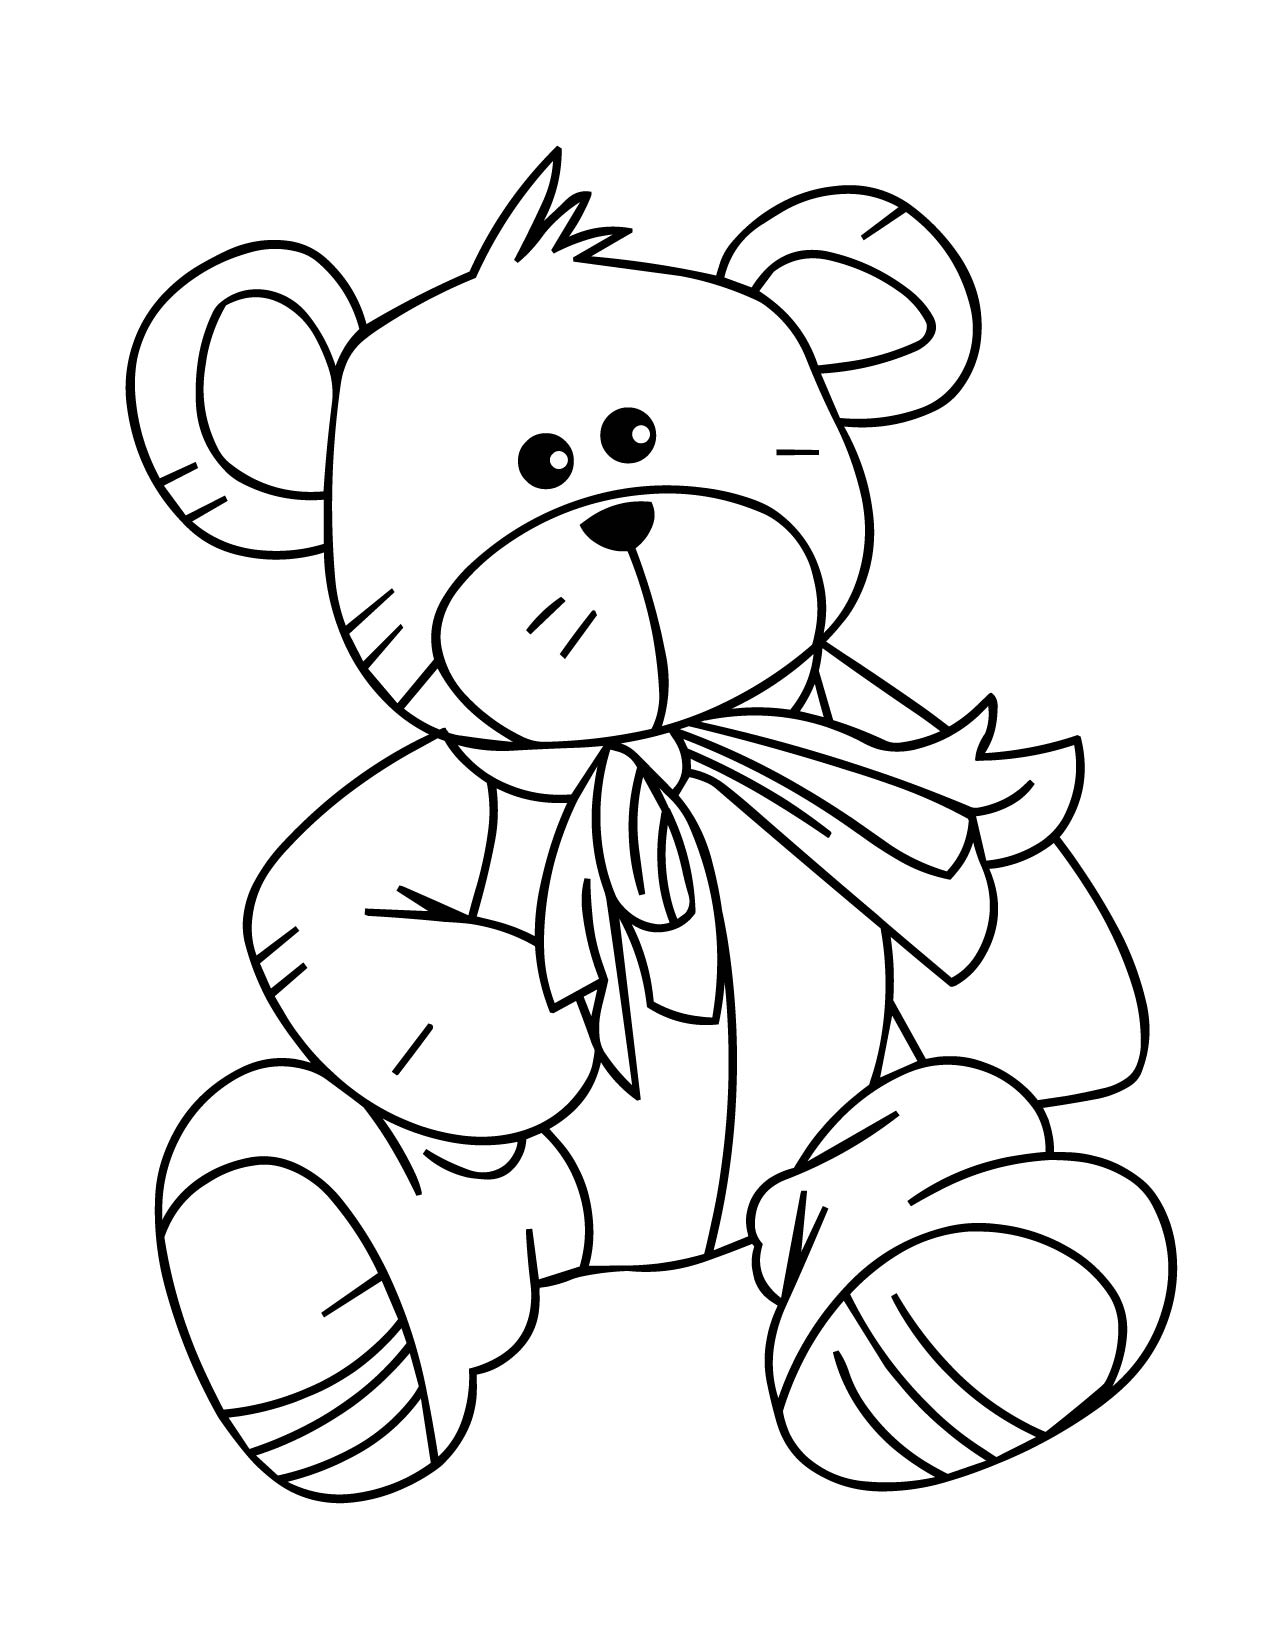 colouring teddy bear teddy bear coloring pages for girls to print for free colouring bear teddy